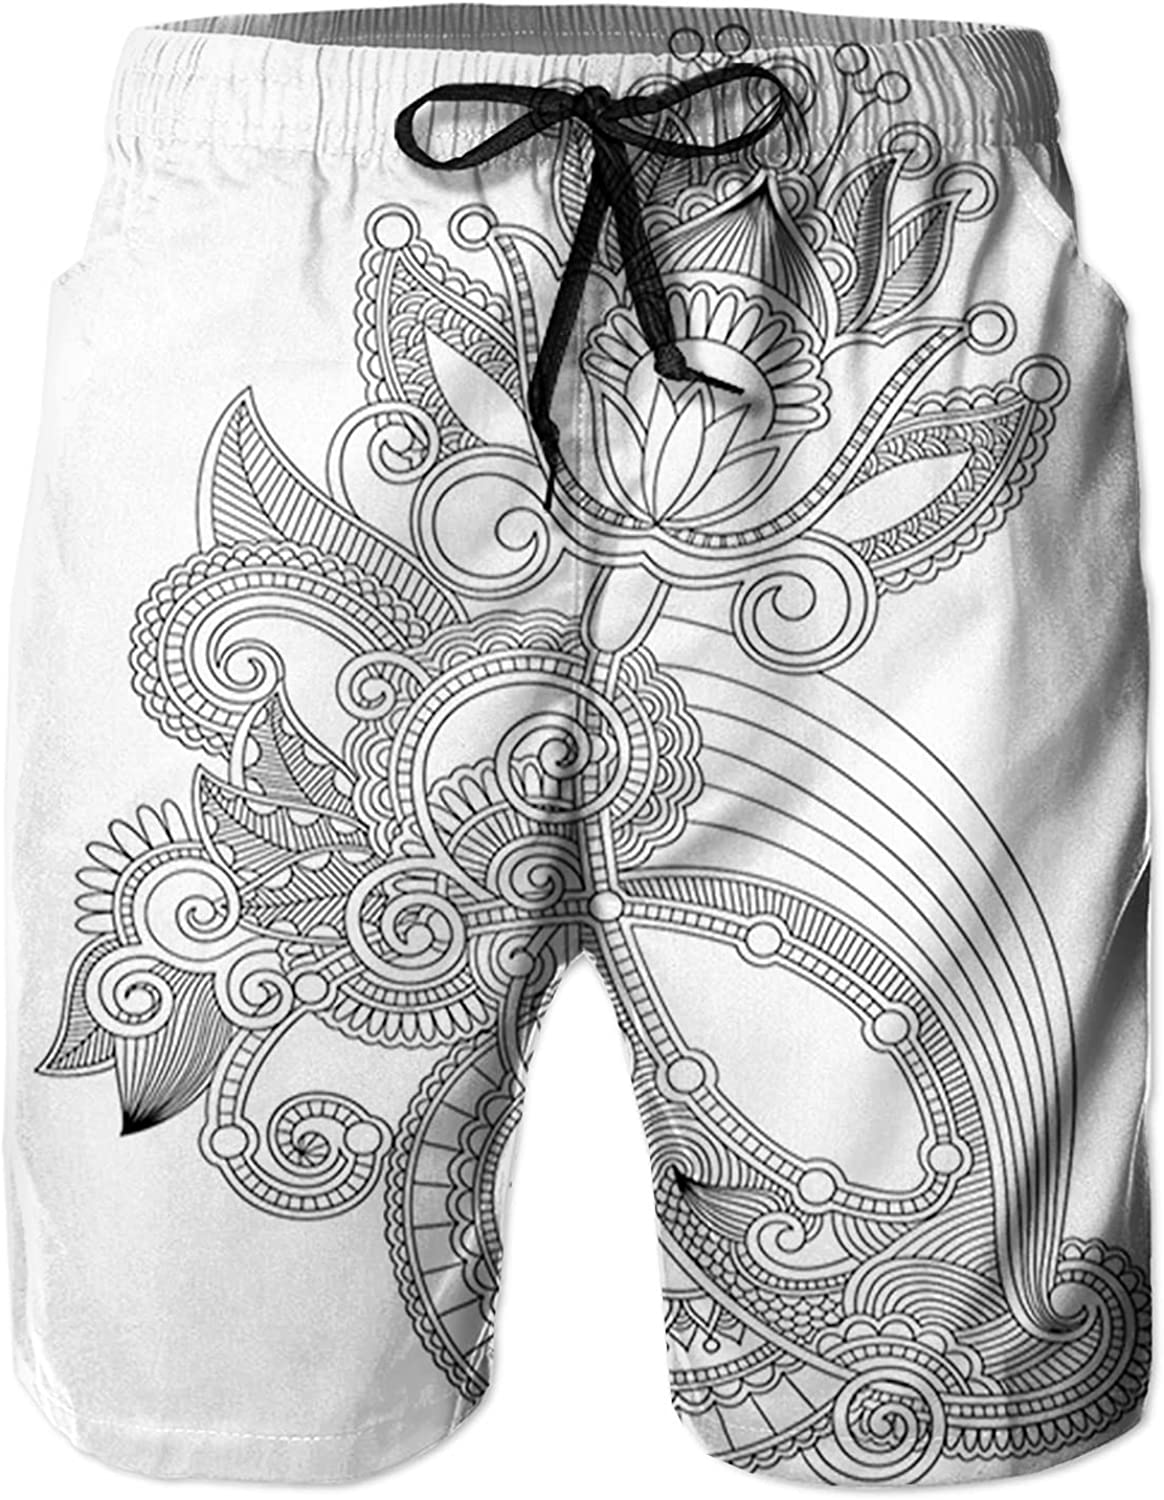 Men's Long Swim Trunks with Mesh Lining Beach Bathing Suits Board Shorts Swimwear with Pockets and No Mesh,Hand Drawn Line Blossoming Organic Nature FlowerMotif Antique Ancient L